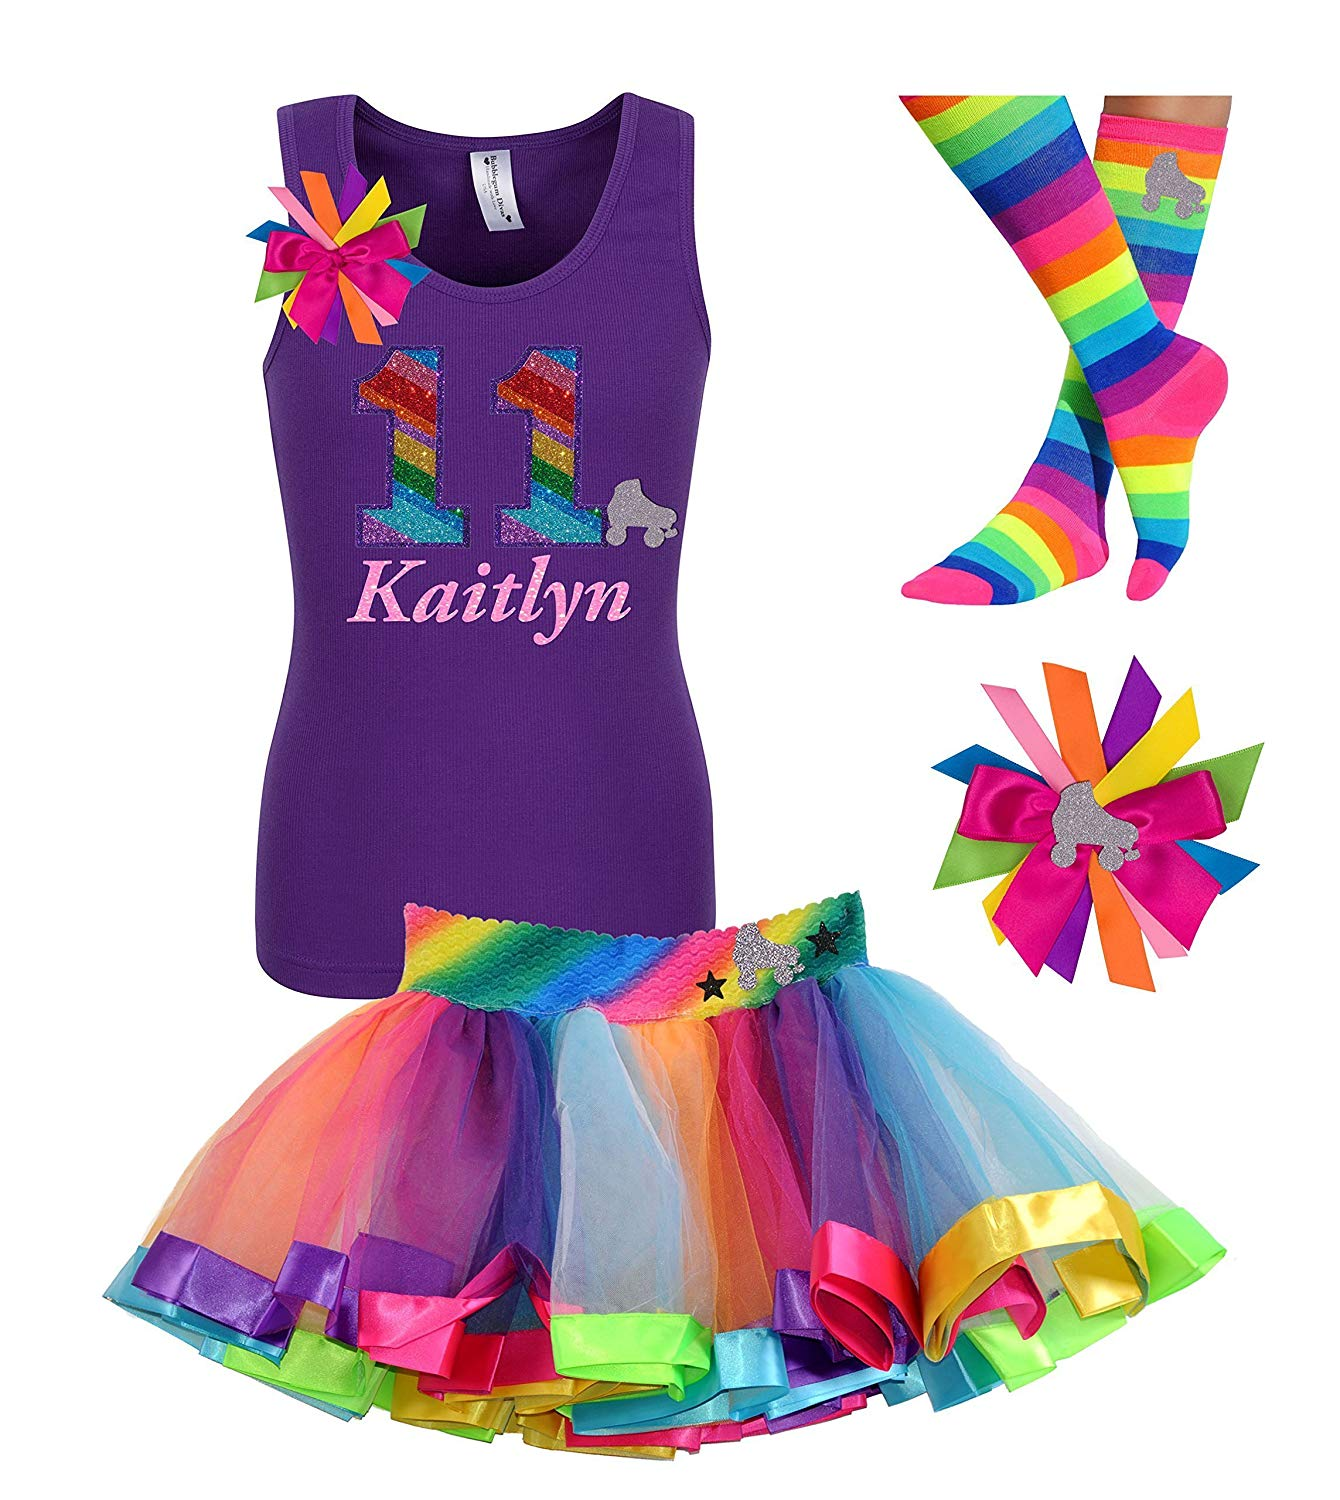 f1d5c08449cd Get Quotations · Personalized 11th Birthday Roller Skate Shirt Tutu Skirt  Rainbow Eleven Tween Girls Party Outfit 11